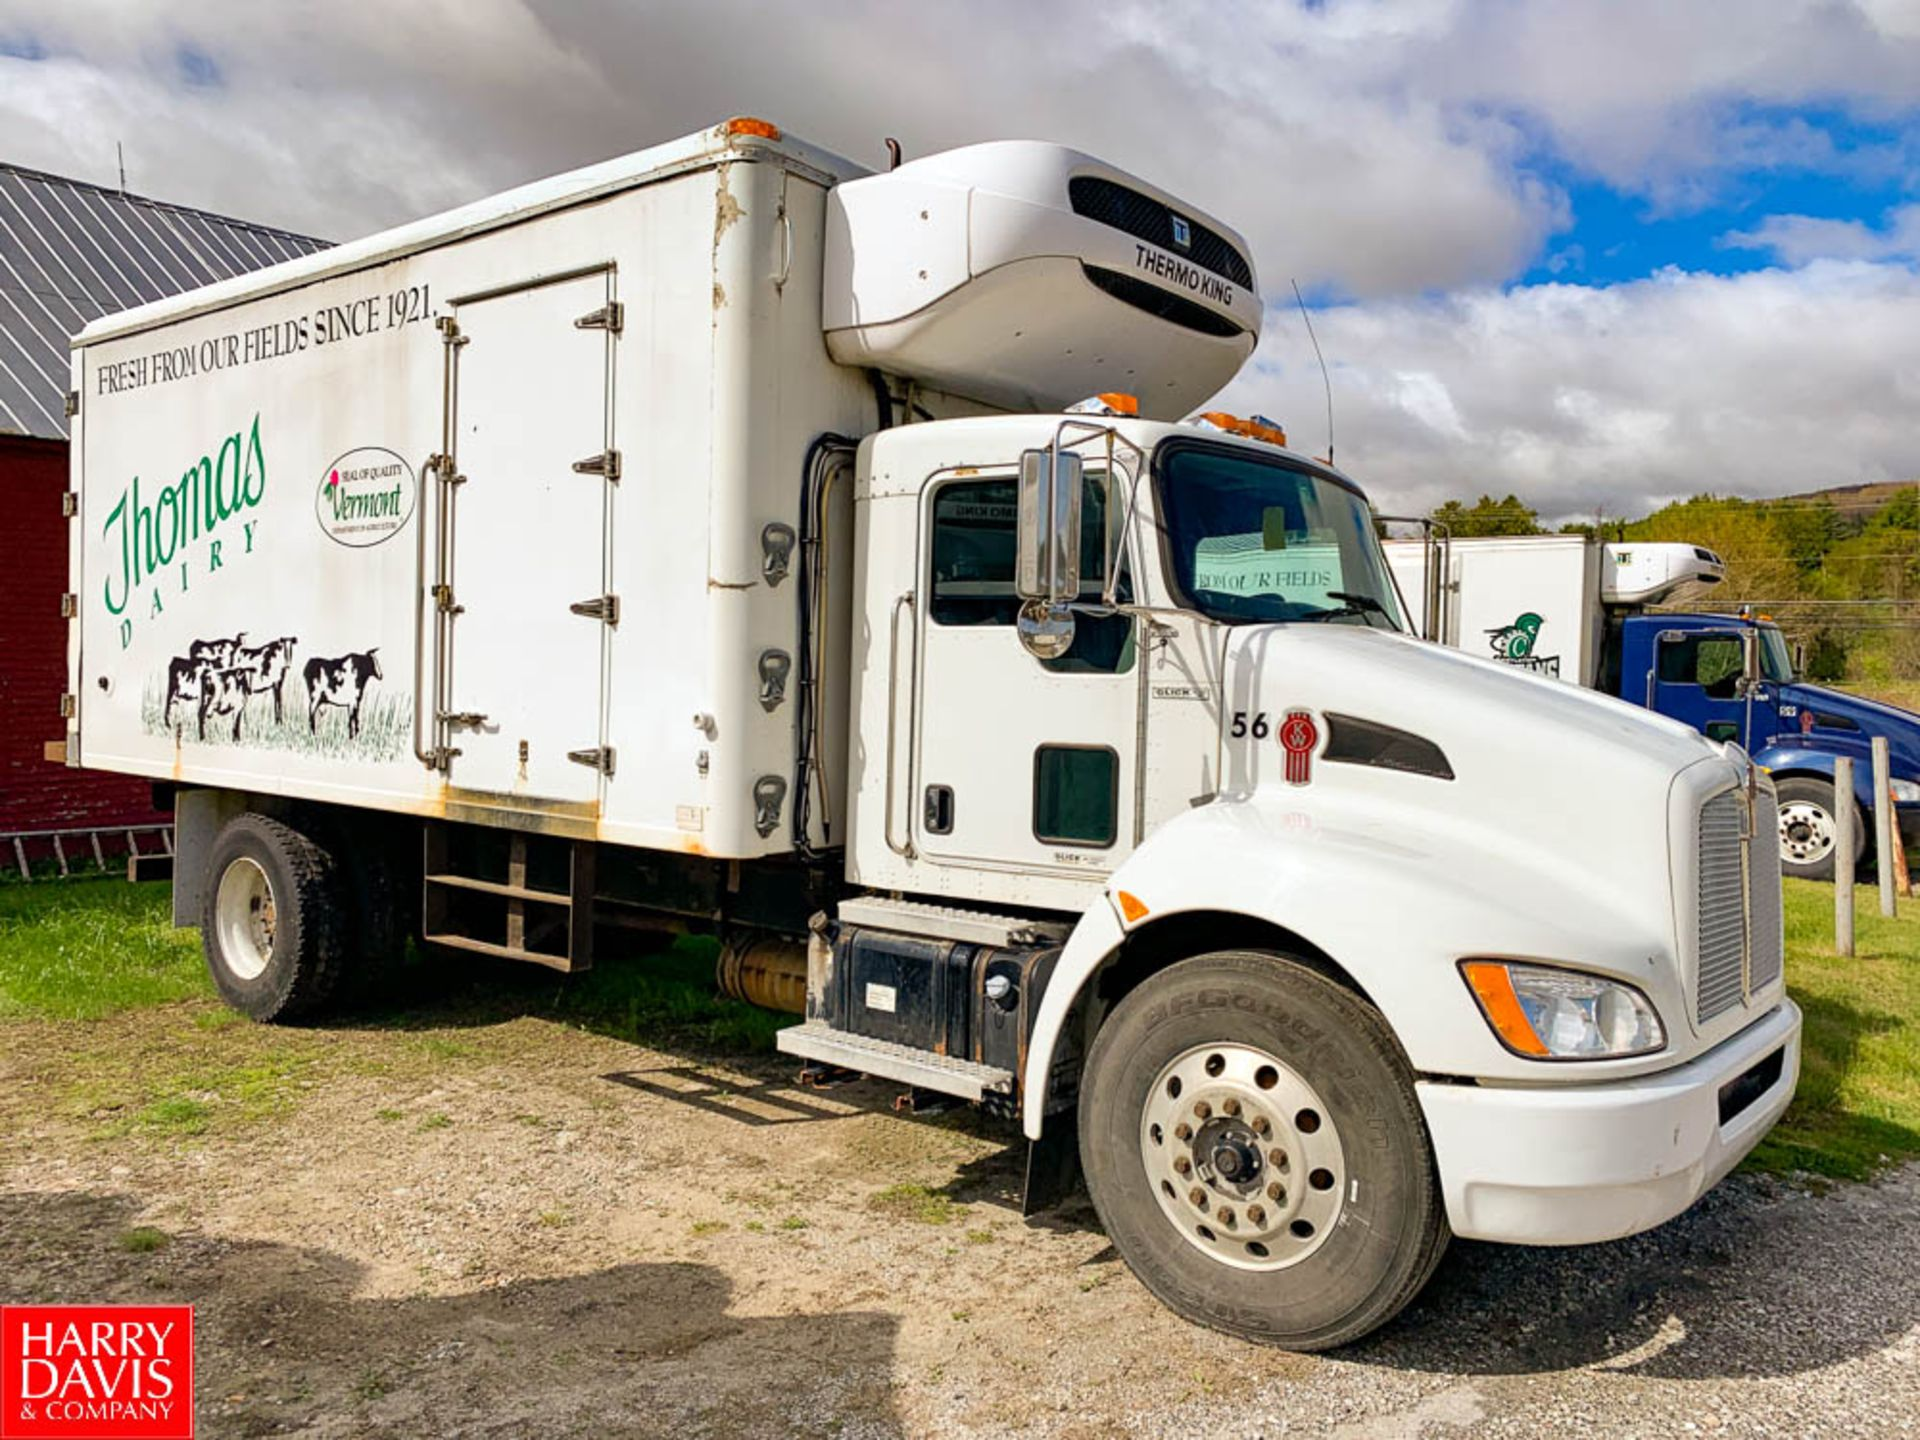 2012 Kenworth 18' Refrigerated Ice Cream Delivery Truck: Model T370, 33,000 GVWR, Paccar PX-8-270 - Image 2 of 6